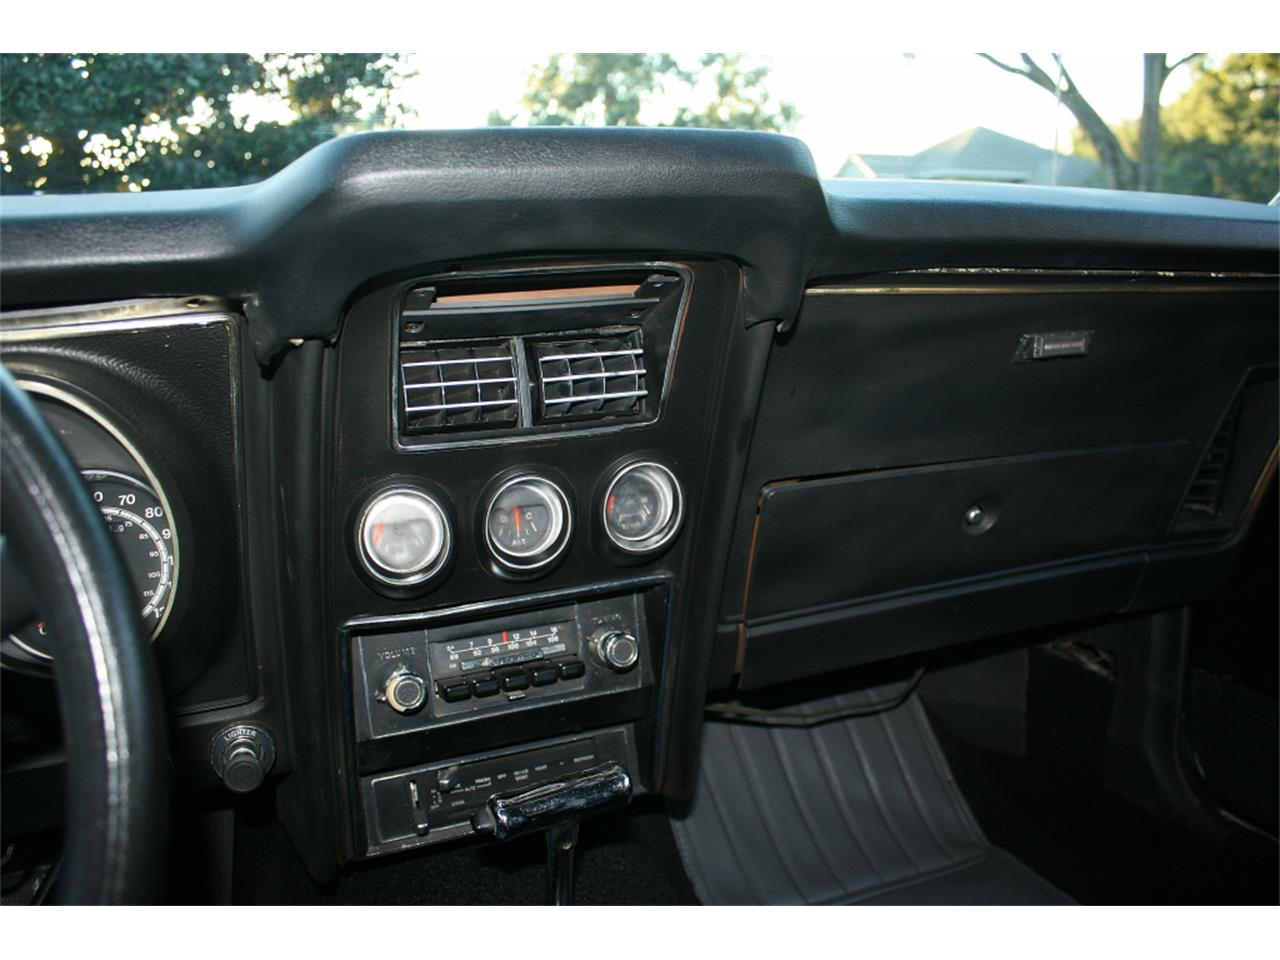 Large Picture of '73 Mustang located in Florida Offered by MJC Classic Cars - MA11